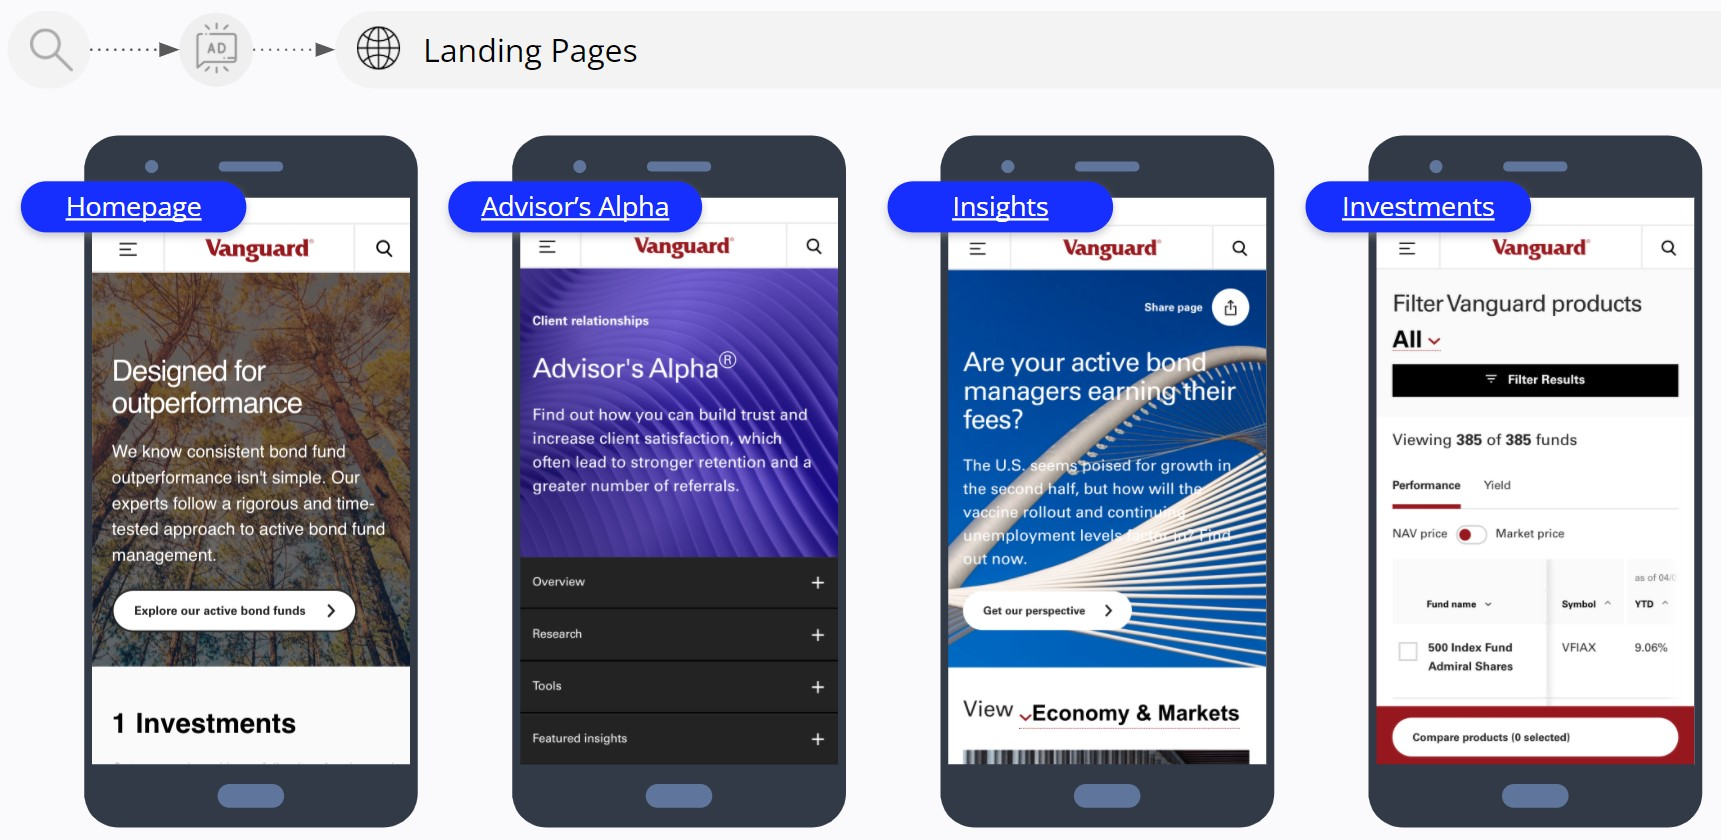 Vanguard - Paid Search Ads Landing Pages